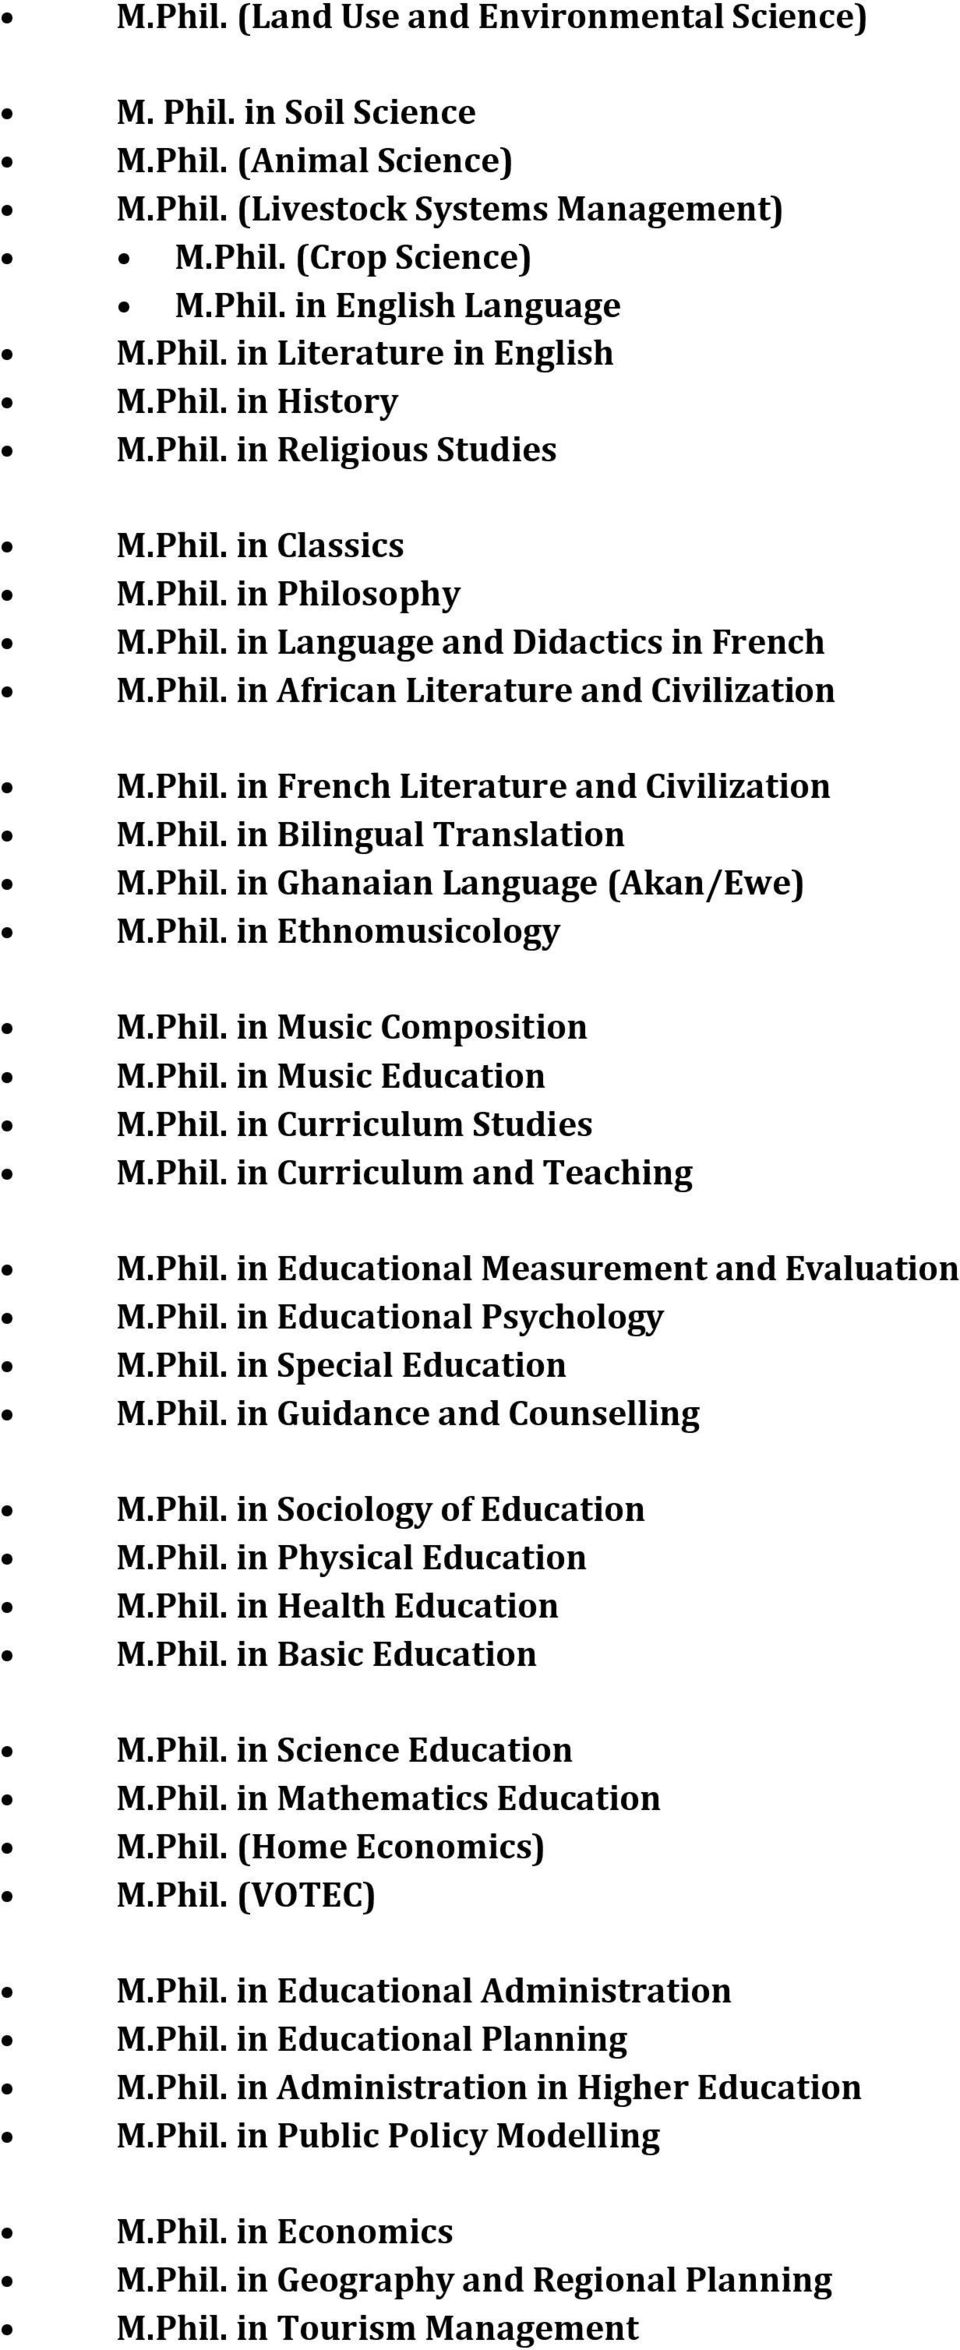 Phil. in Bilingual Translation M.Phil. in Ghanaian Language (Akan/Ewe) M.Phil. in Ethnomusicology M.Phil. in Music Composition M.Phil. in Music Education M.Phil. in Curriculum Studies M.Phil. in Curriculum and Teaching M.